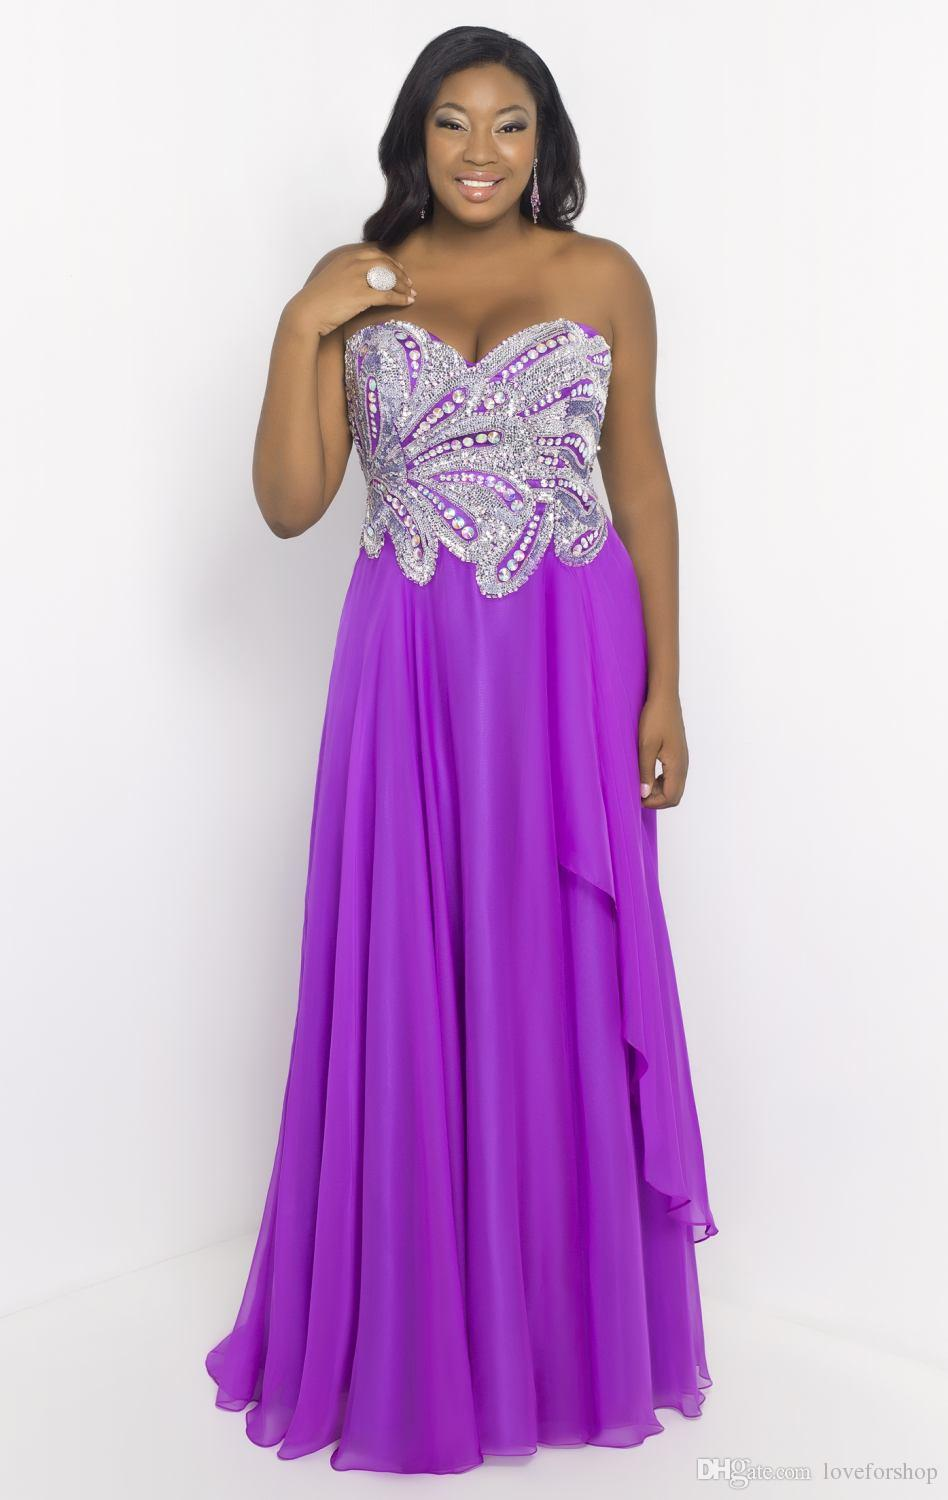 Designer plus sizes dresses for all special occasions prom bridal